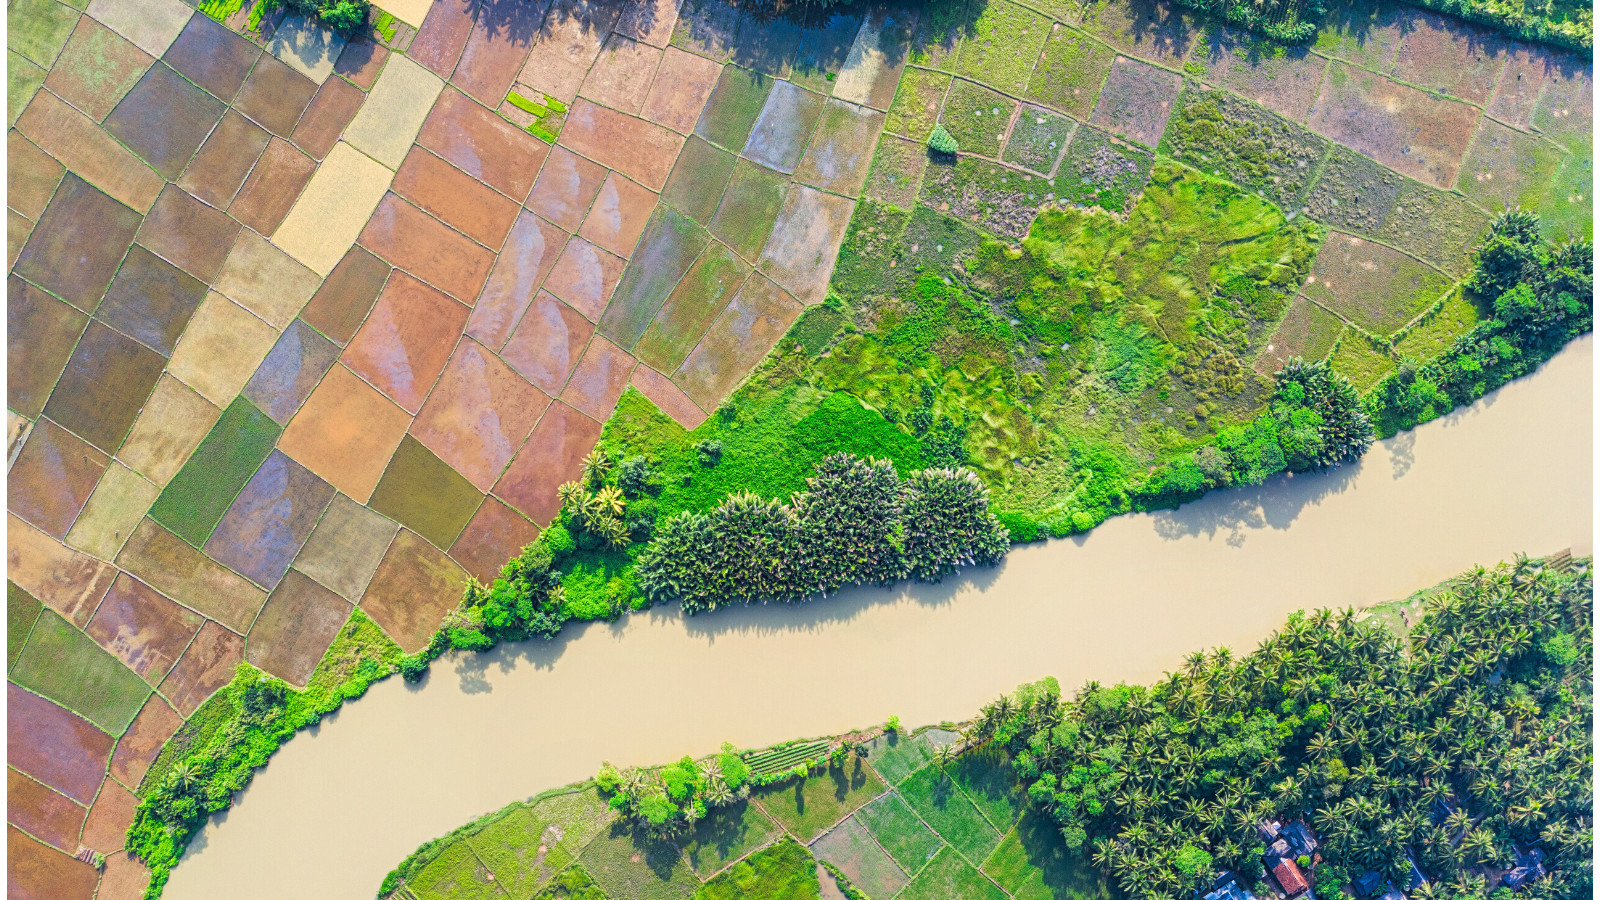 Aerial photograph of crop lands and river, Indonesia.